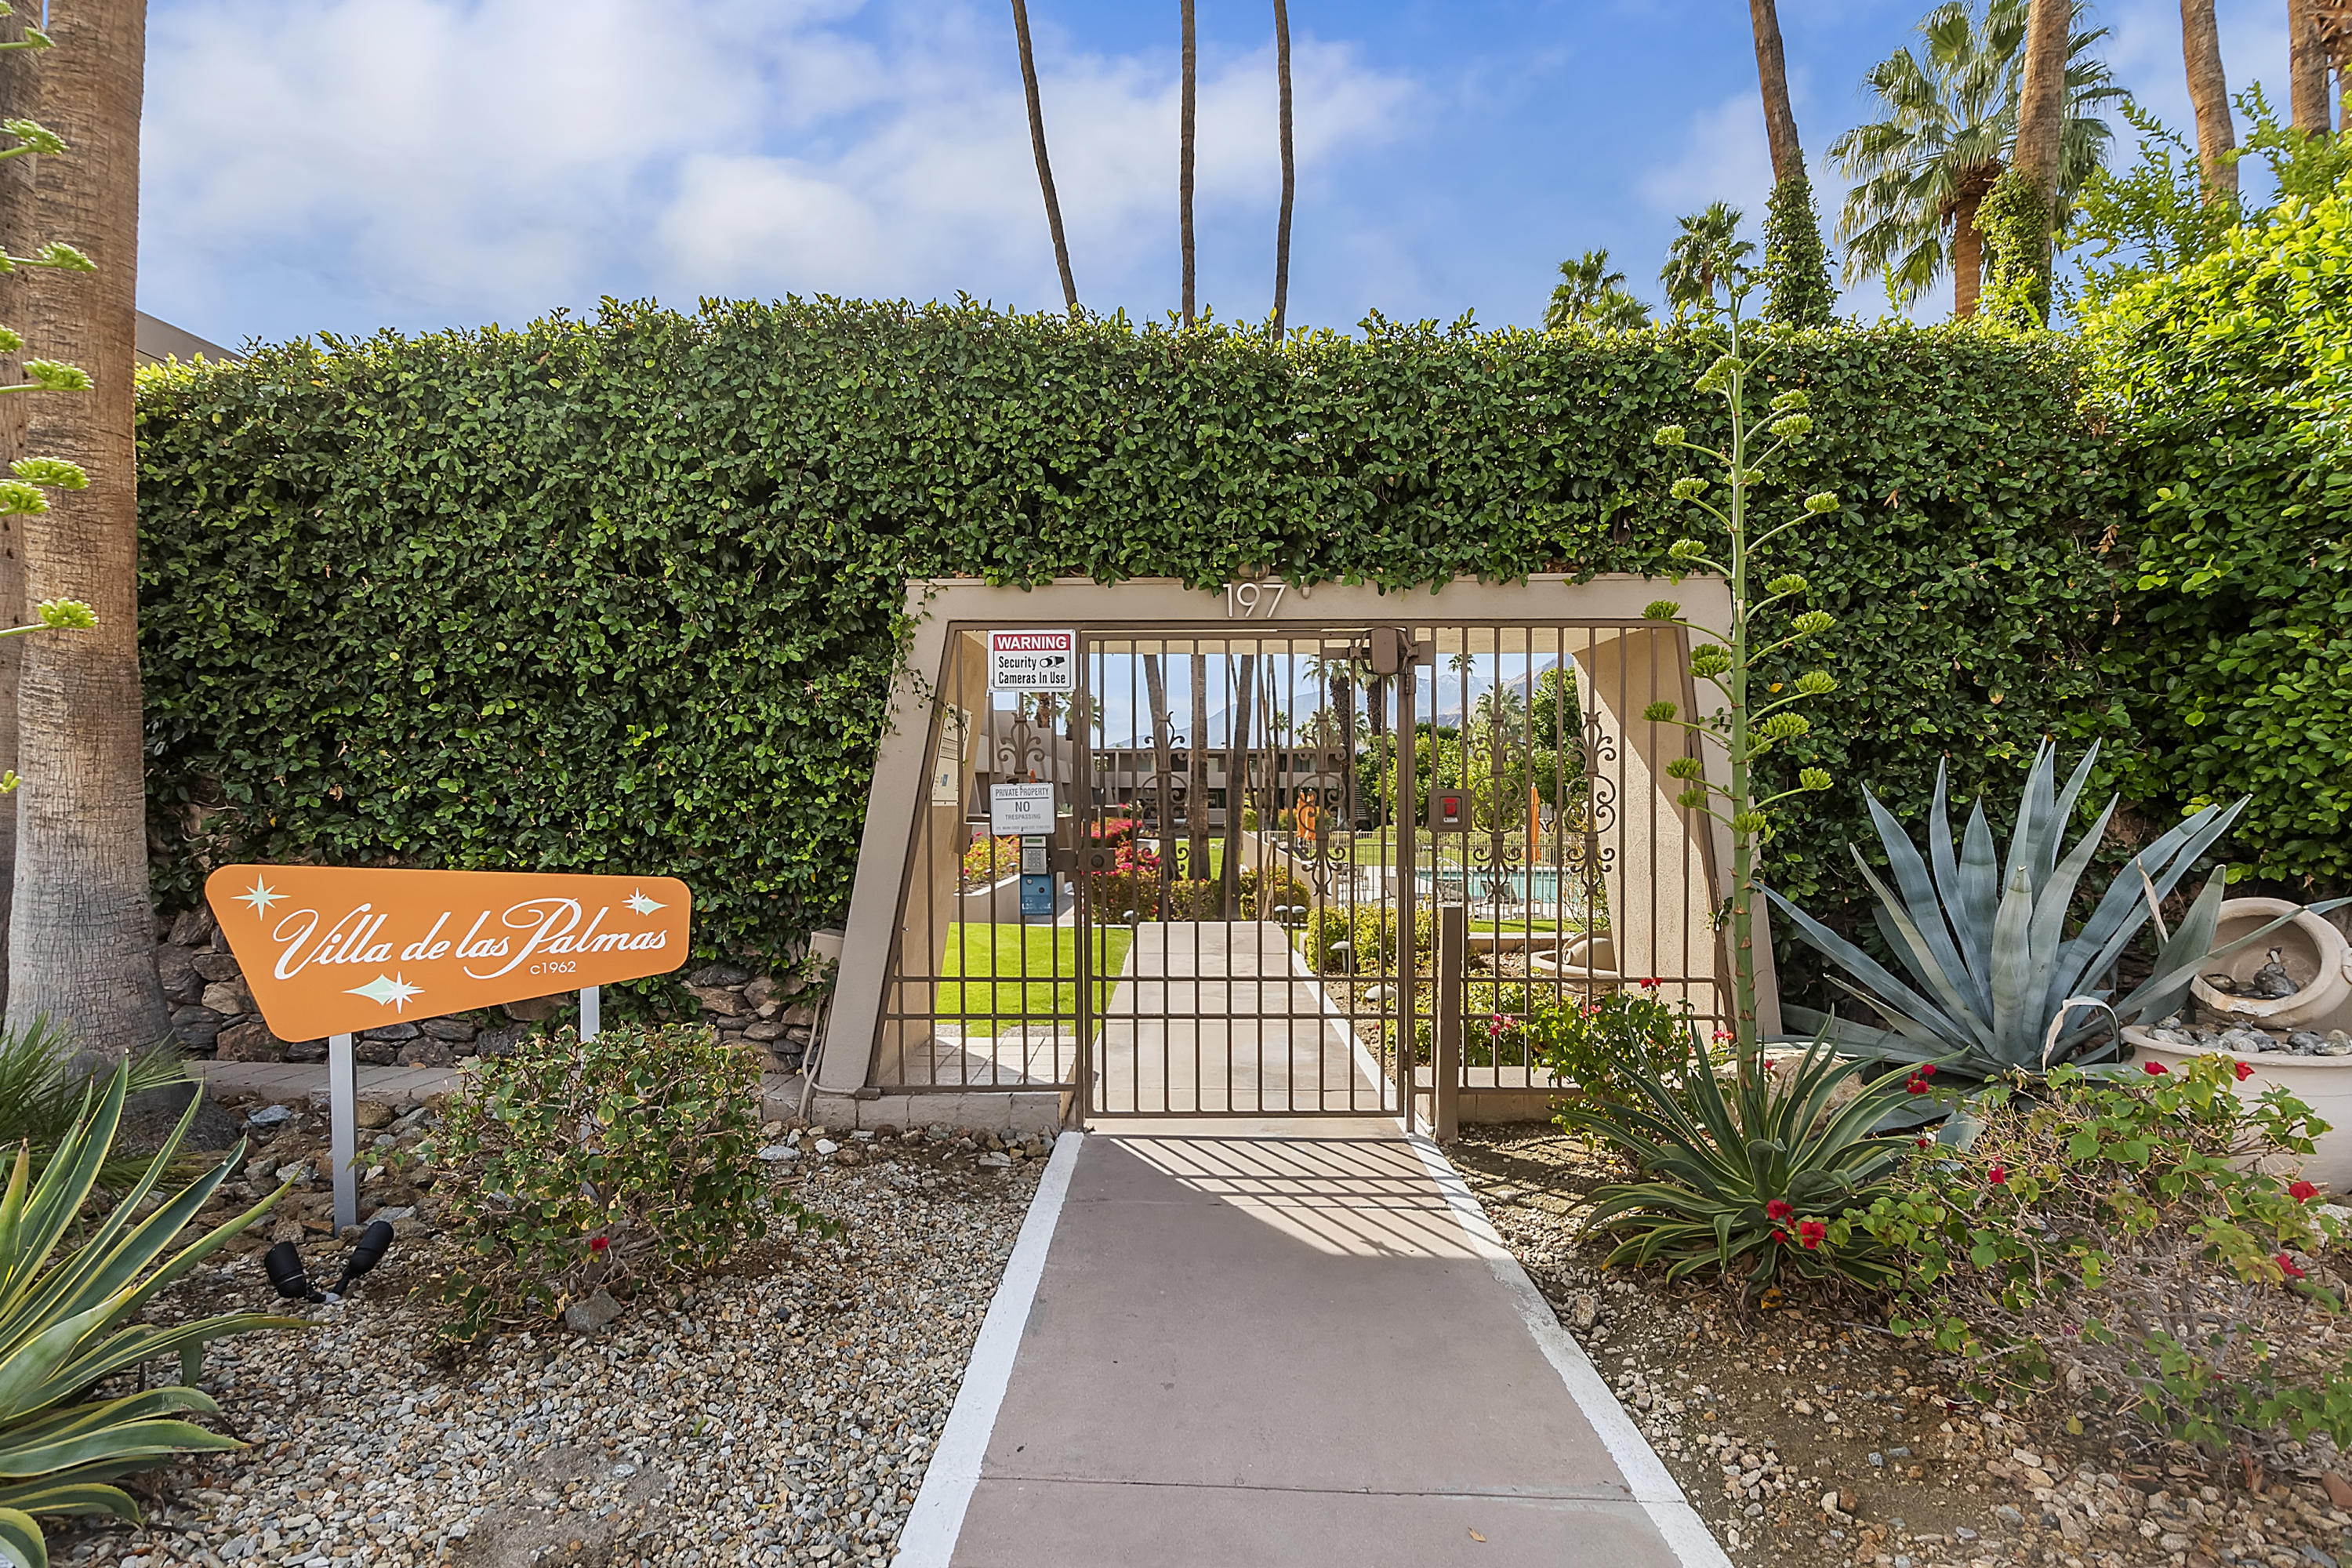 This rare condo, situated in the prestigious Old Las Palmas neighborhood of Palm Springs, has all the charmingly authentic Mid-Century-Modern feel one could want. Welcome to Villa De Las Palmas—one of Palm Springs' hidden jewels. Built in 1962, this intimate, 24-unit community reminds you a bit of the glamour of old Palm Springs. This rare end unit has three outdoor living spaces for you to enjoy and includes the best of those classic Palm Springs mountain views that everyone craves. The kitchen has views of the interior courtyard, and leads to the dining and living rooms with the original stacked stone fireplace—a Mid-Century treasure. There is plenty of storage within the two-bedroom, two-bath layout. Two additional balconies are available to enjoy that indoor outdoor lifestyle. This one-of-a-kind opportunity comes complete with underground parking and an additional exterior storage area, beautifully landscaped community grounds, and a year-round heated saltwater pool and spa.